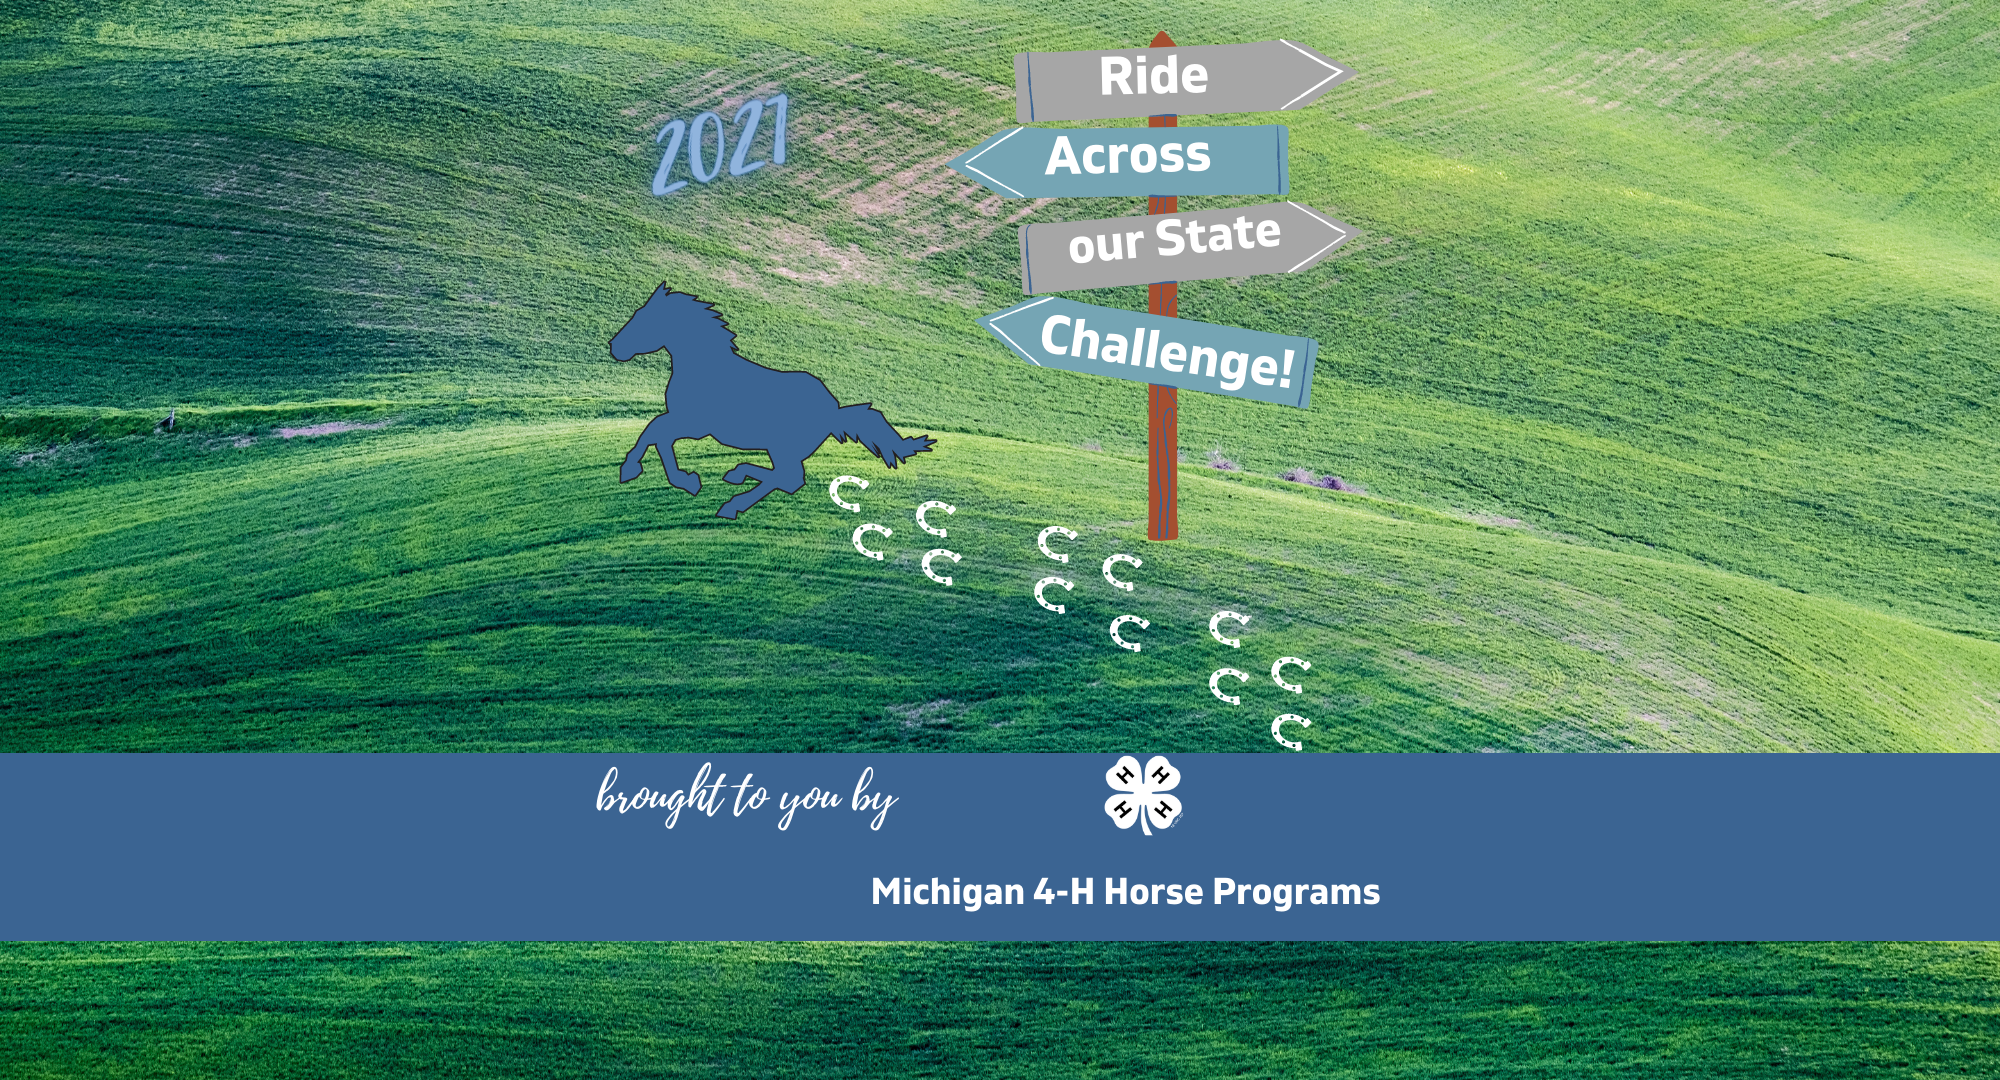 Michigan 4-H Horse Program's Ride Across our State Challenge logo.